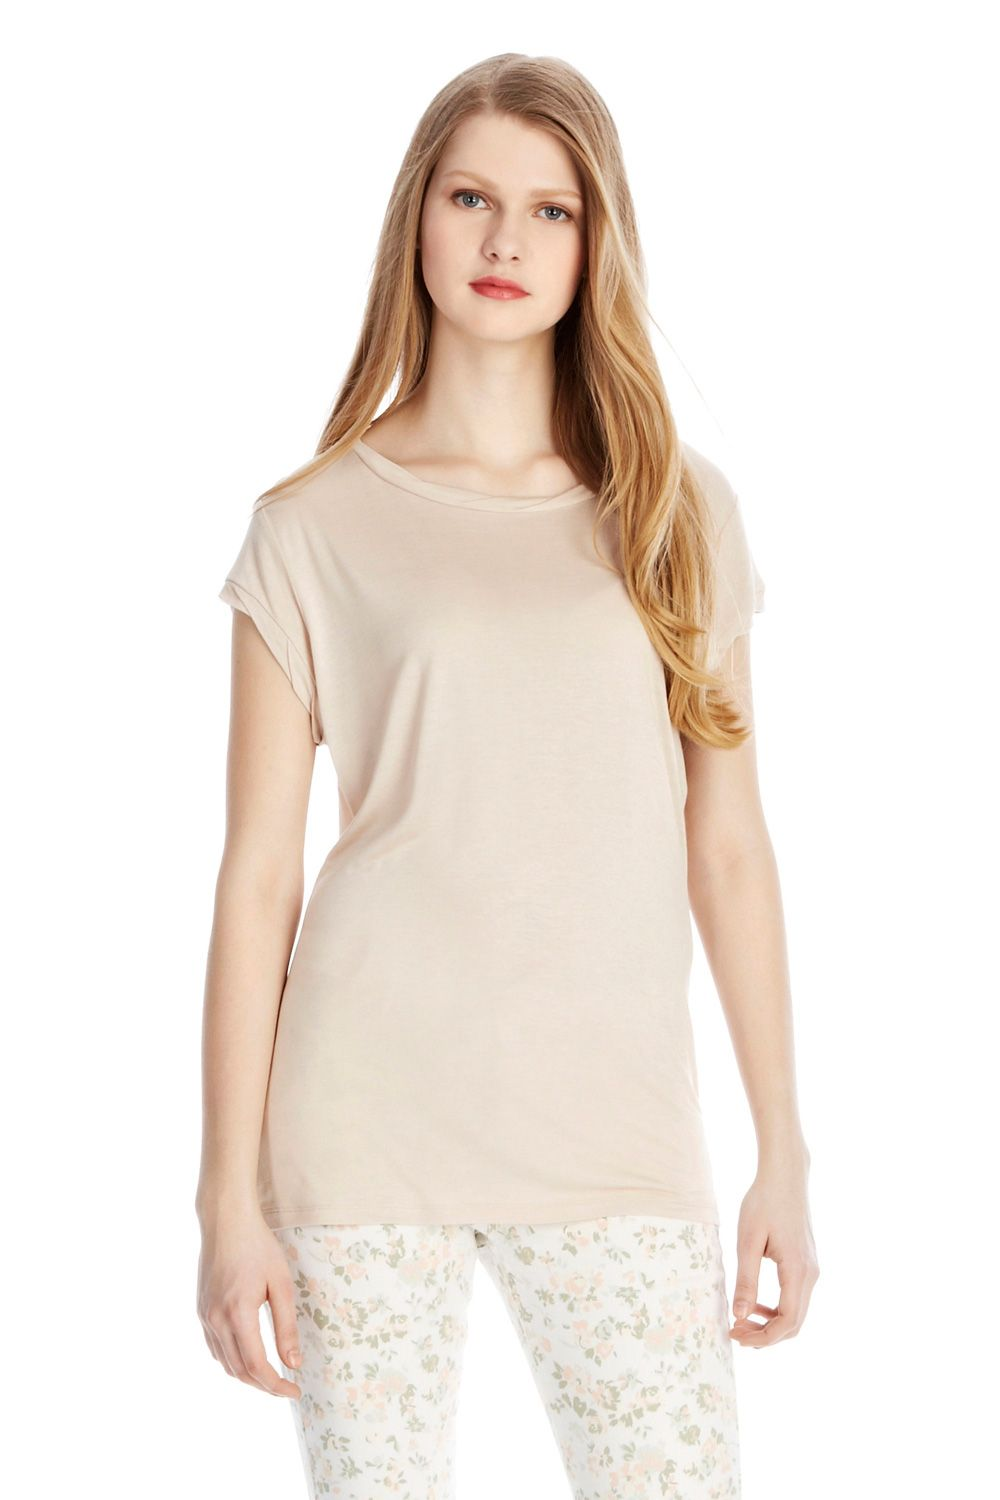 Twist neck formal tee